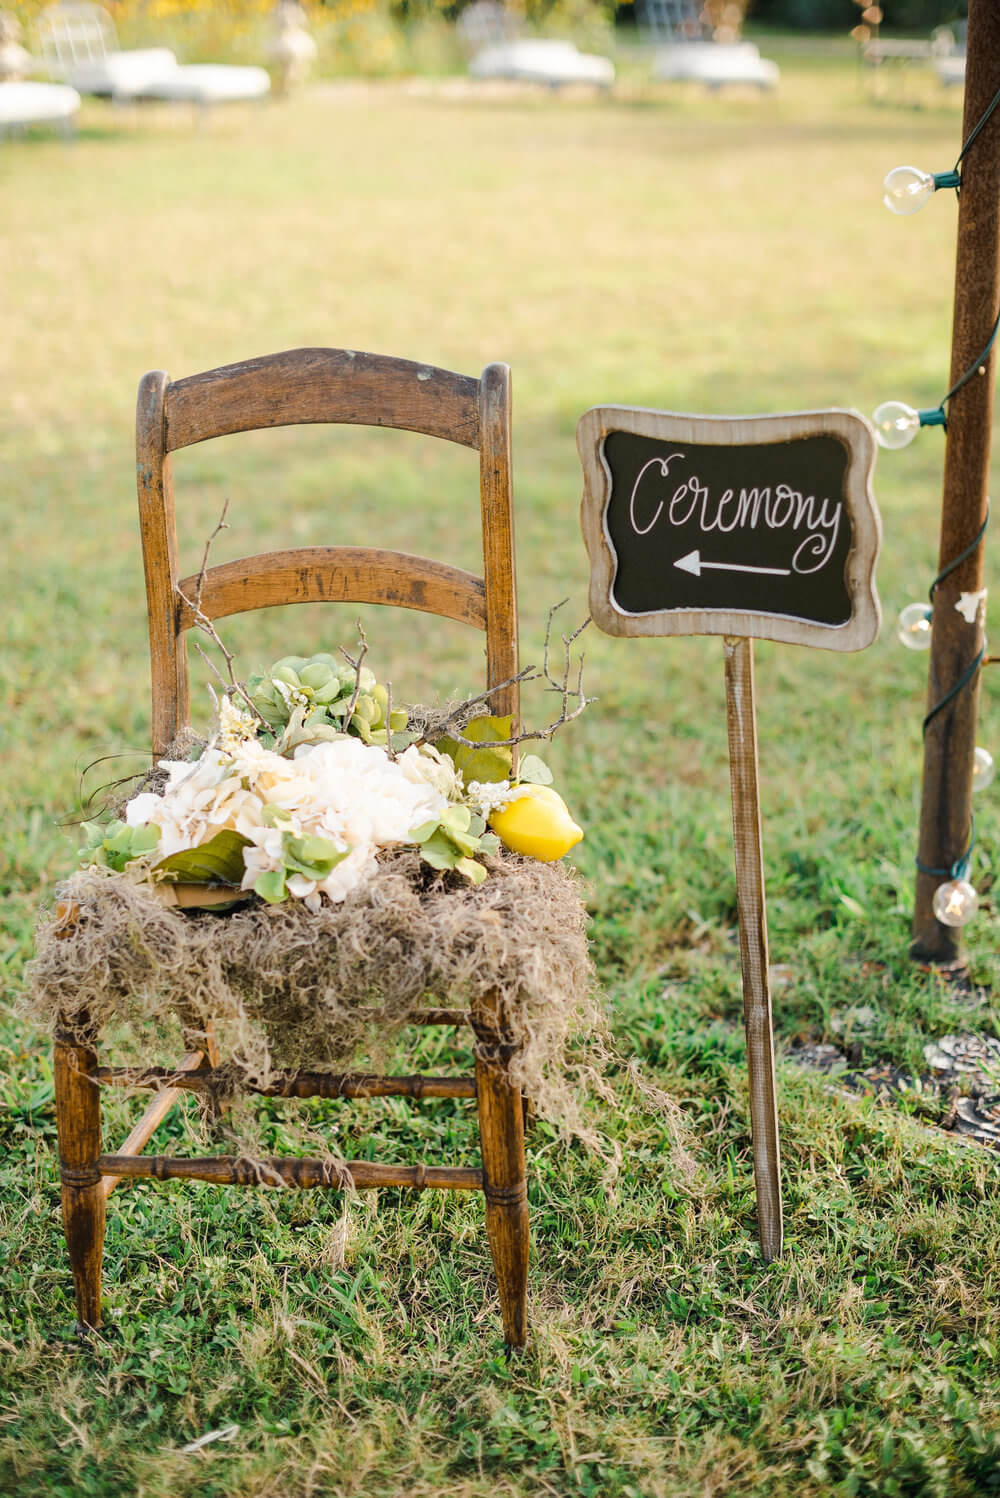 French country wedding inspiration ceremony sign, chalkboard, vintage chair, lemons, style.